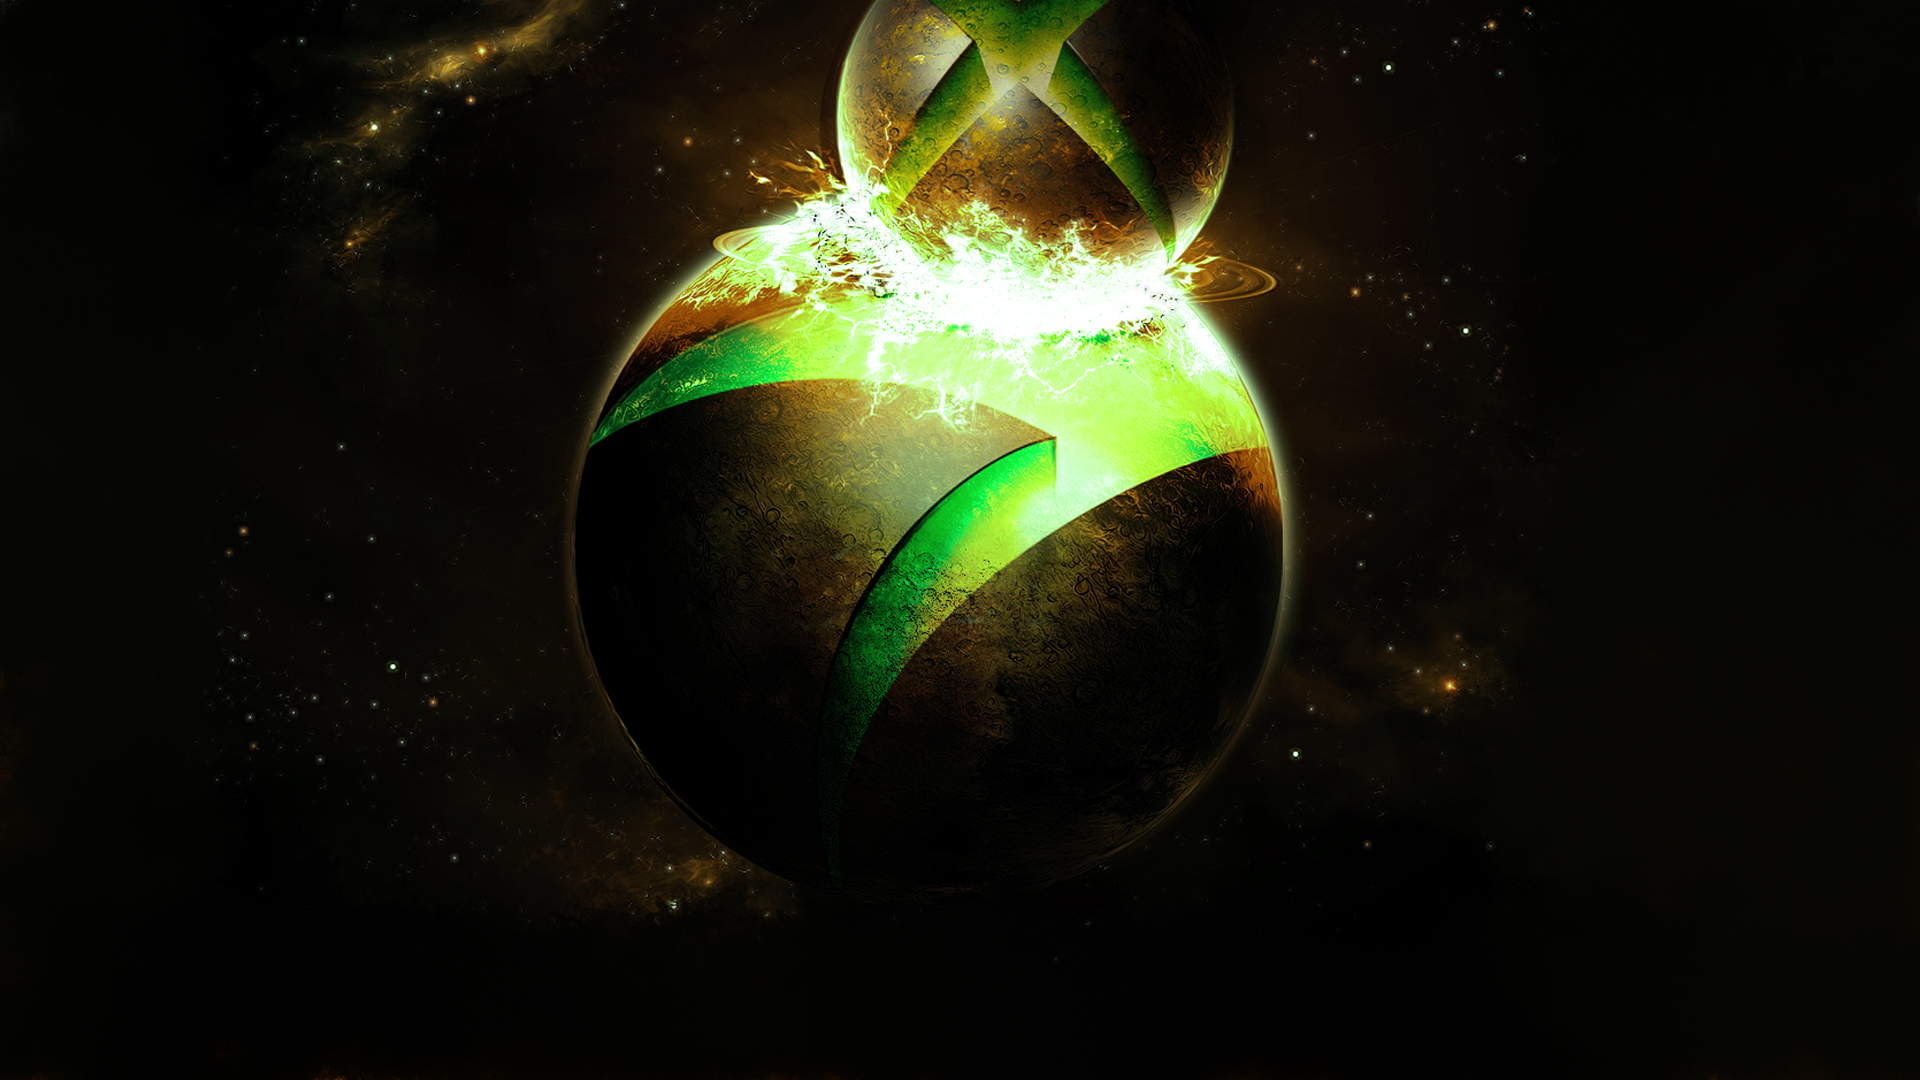 Xbox Wallpapers 1920x1080 px | BsnSCB Graphics